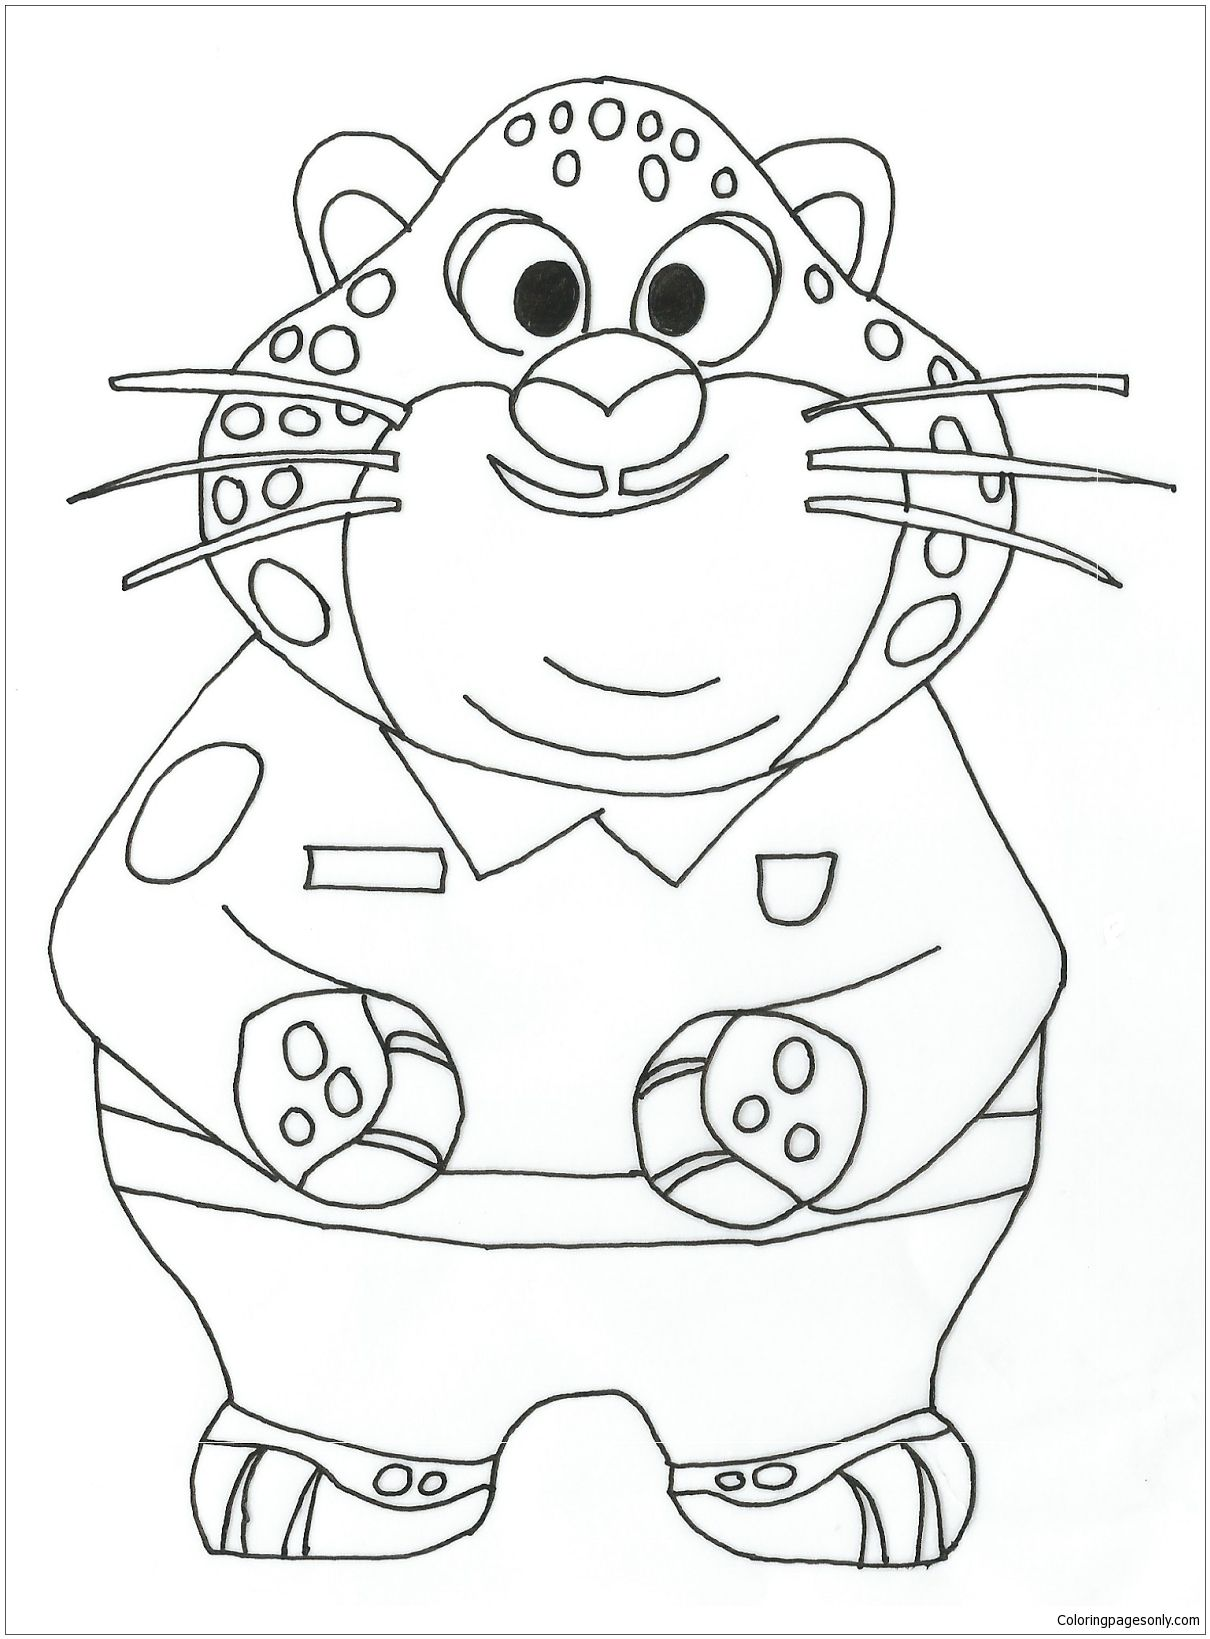 Benjamin Clawhauser Zootopia Coloring Page Zootopia Coloring Pages Cartoon Coloring Pages Coloring Books